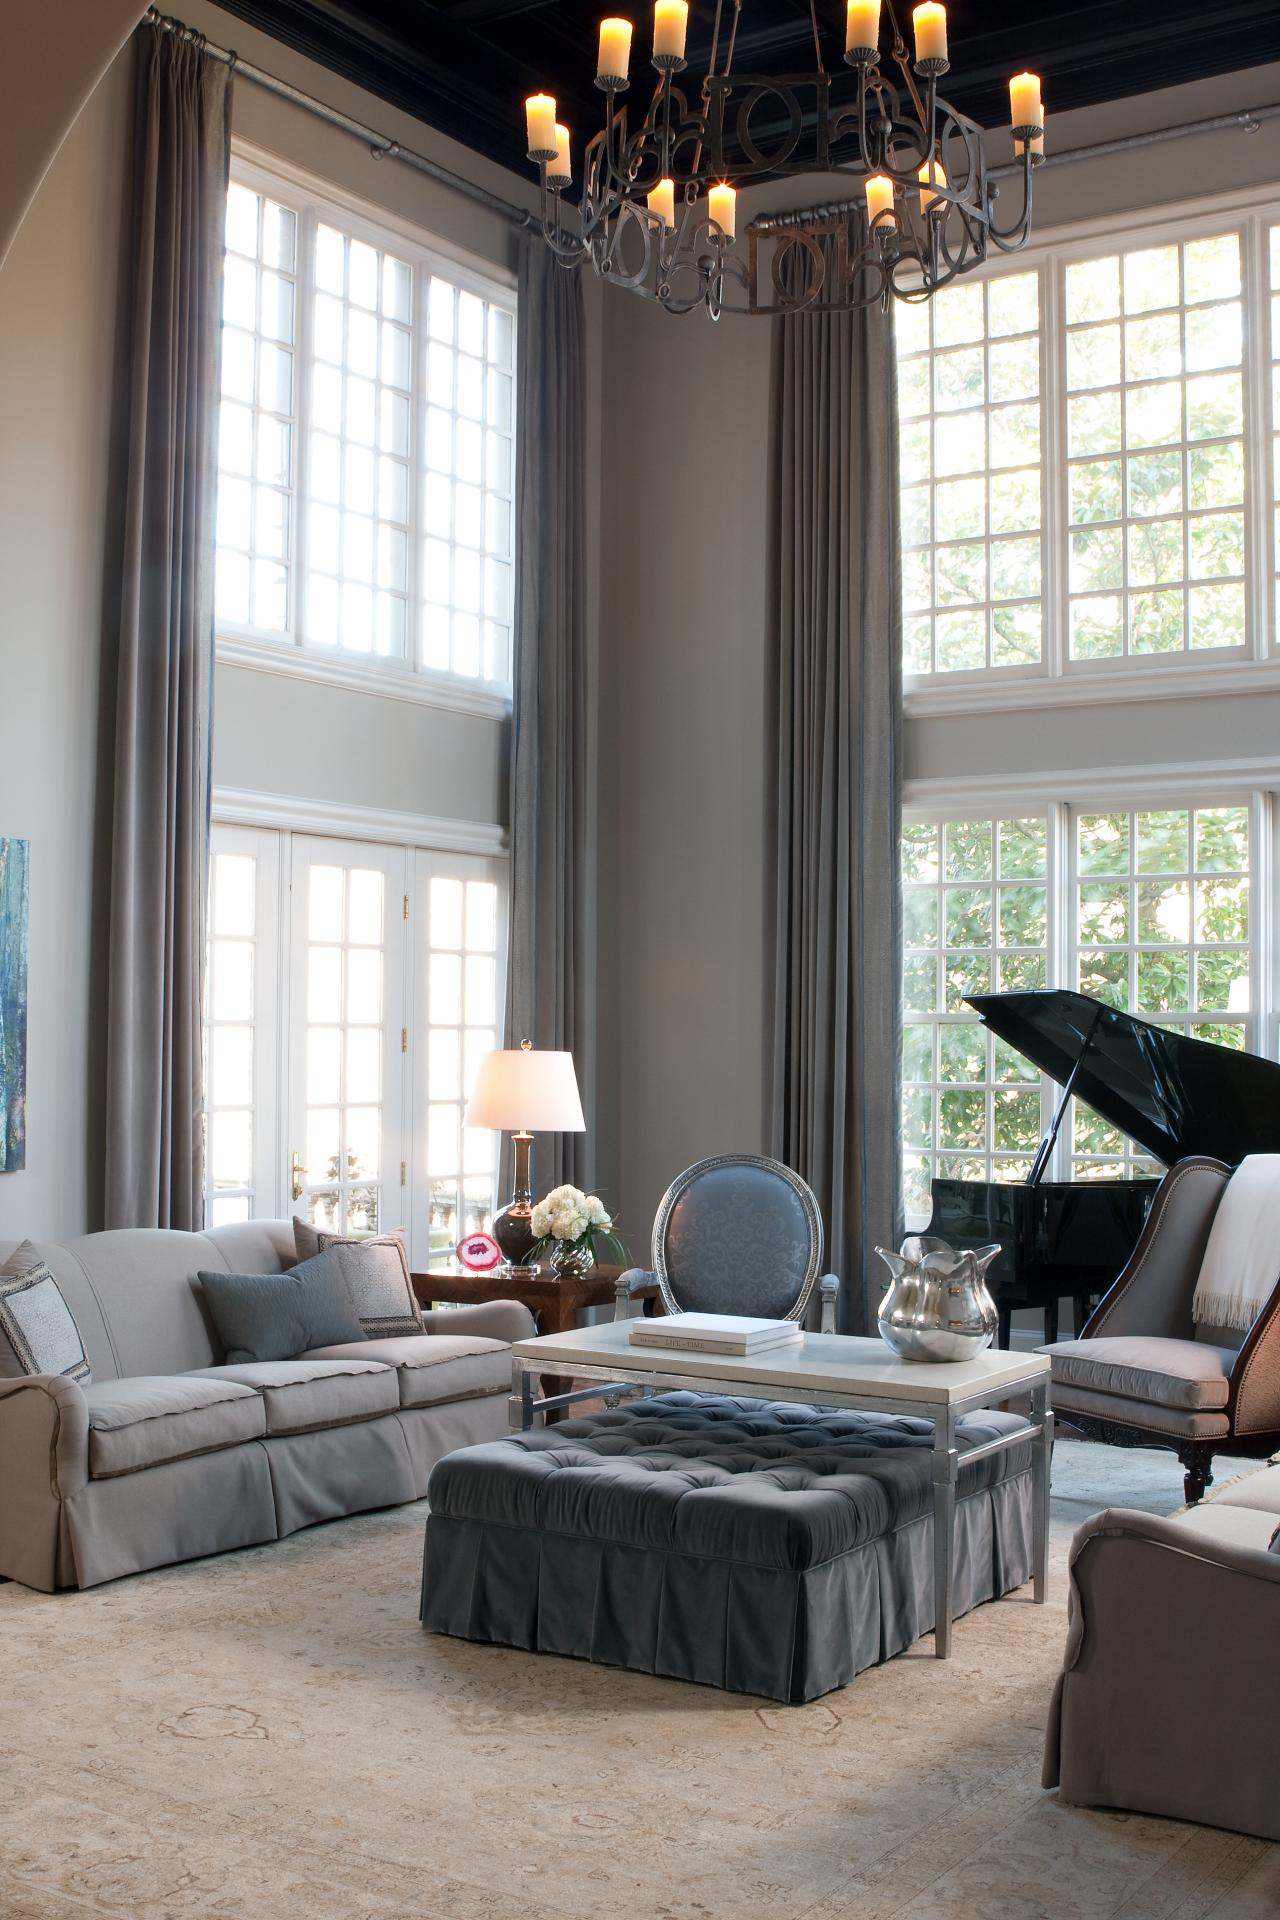 incredible-living-room-home-interior-deco-showcasing-pleasurable-neutral-sofa-set-embellish-rustic-chandelier-also-harmonious-window-treatment-with-long-curtains-design-ideas-window-treatment-with-lon